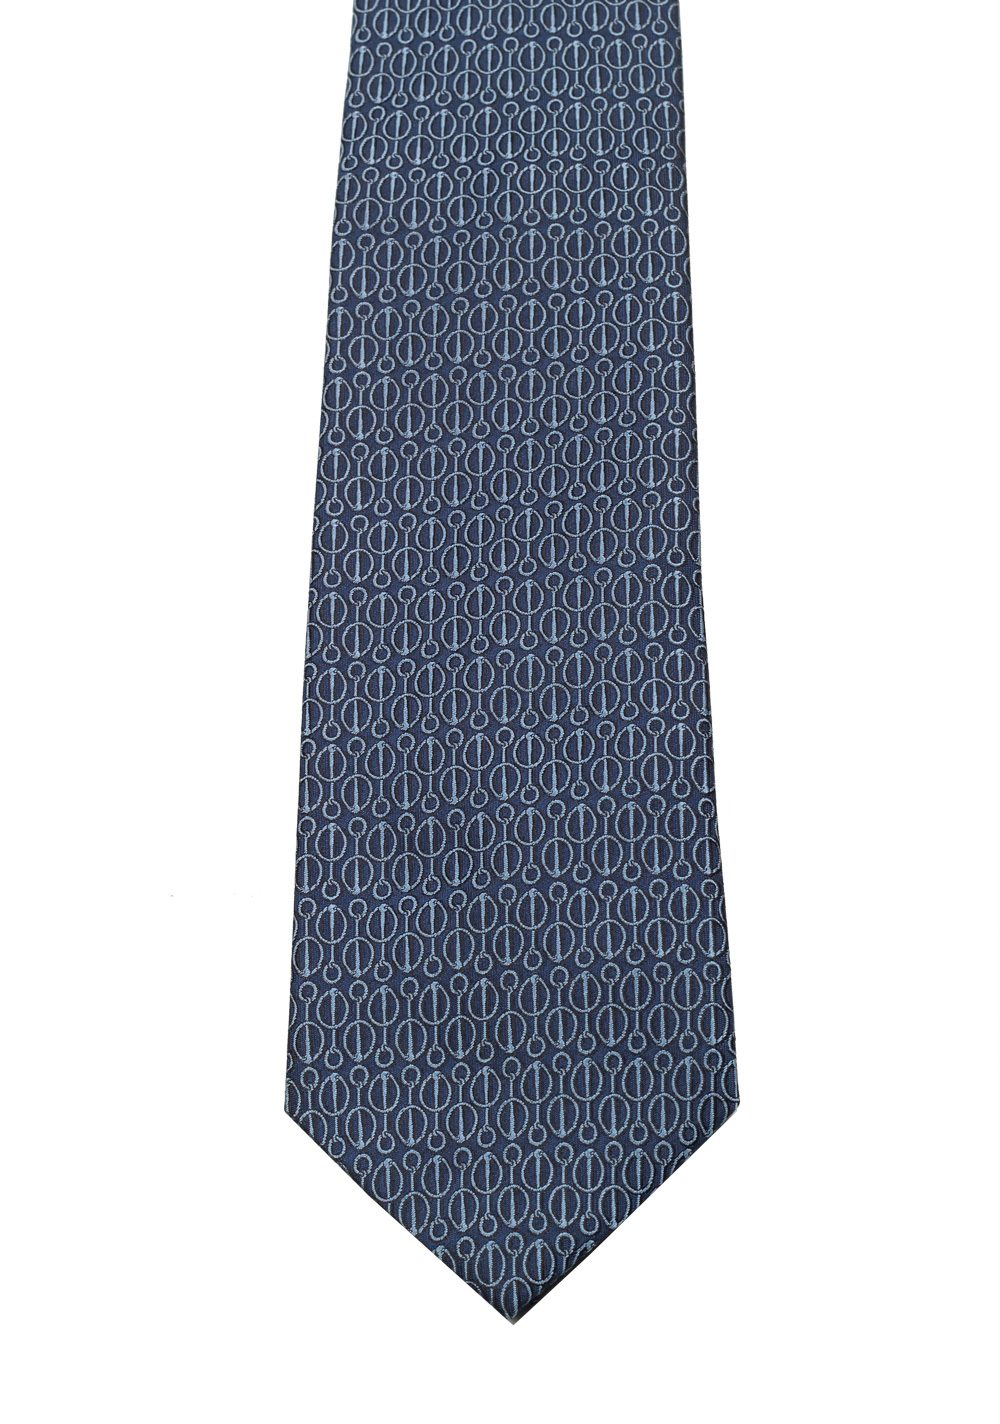 Gucci Blue Patterned Tie | Costume Limité